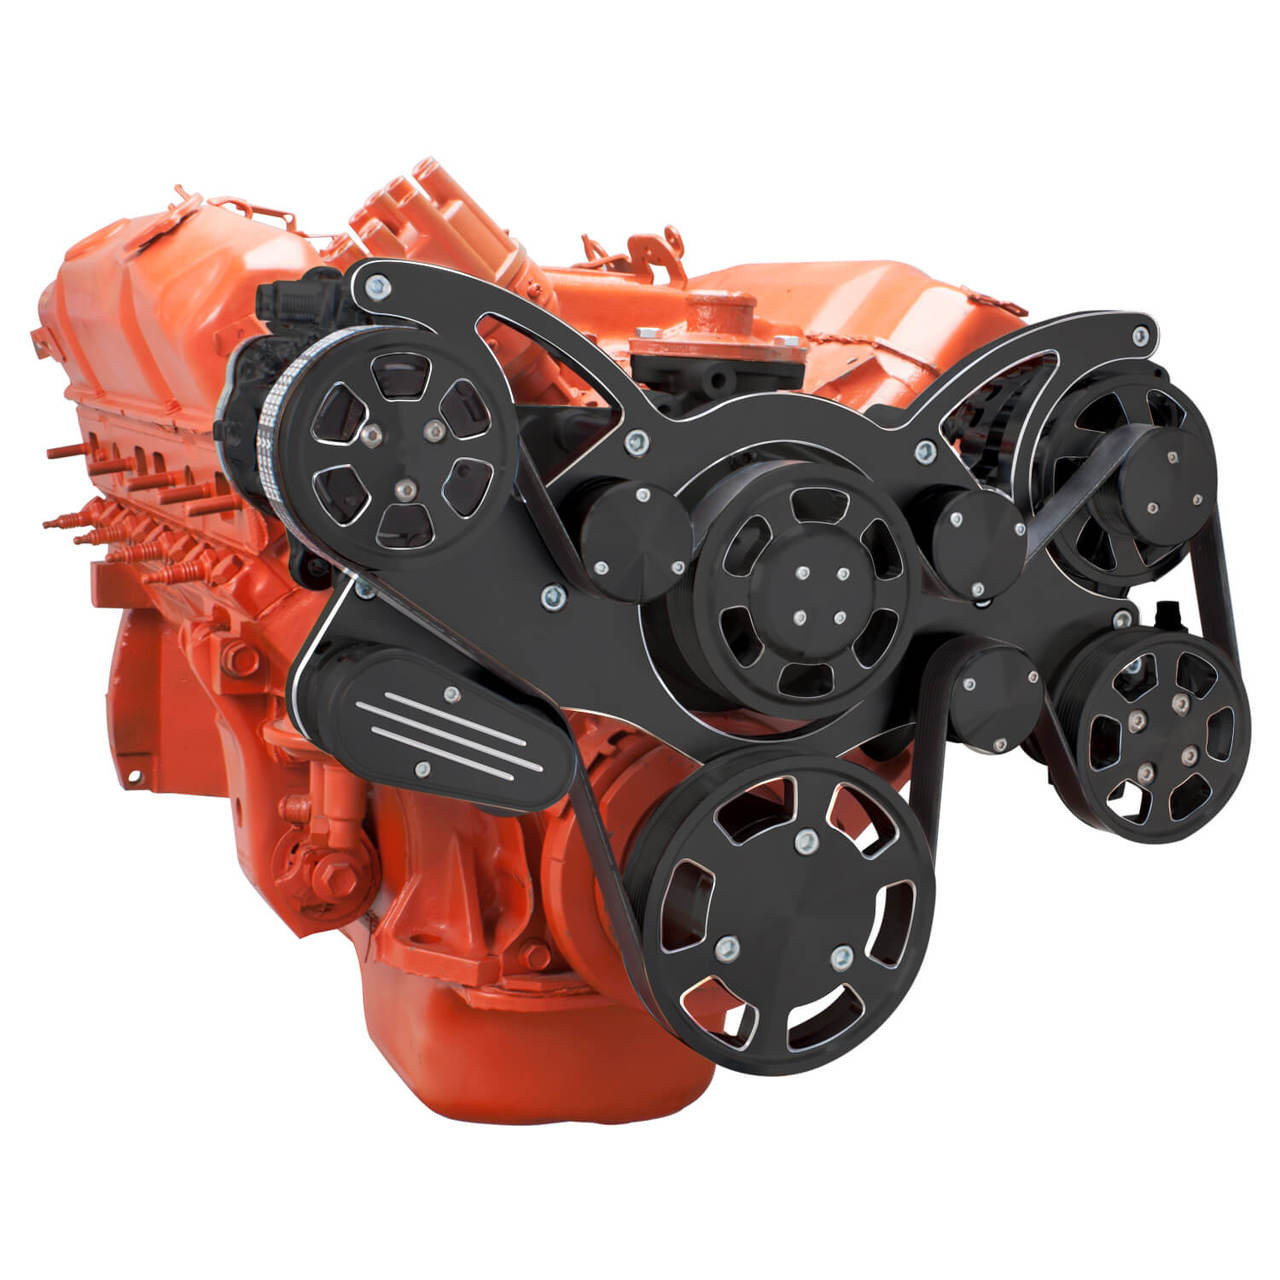 Black Diamond Serpentine System for Big Block Mopar - AC, Power Steering &  Alternator - All Inclusive